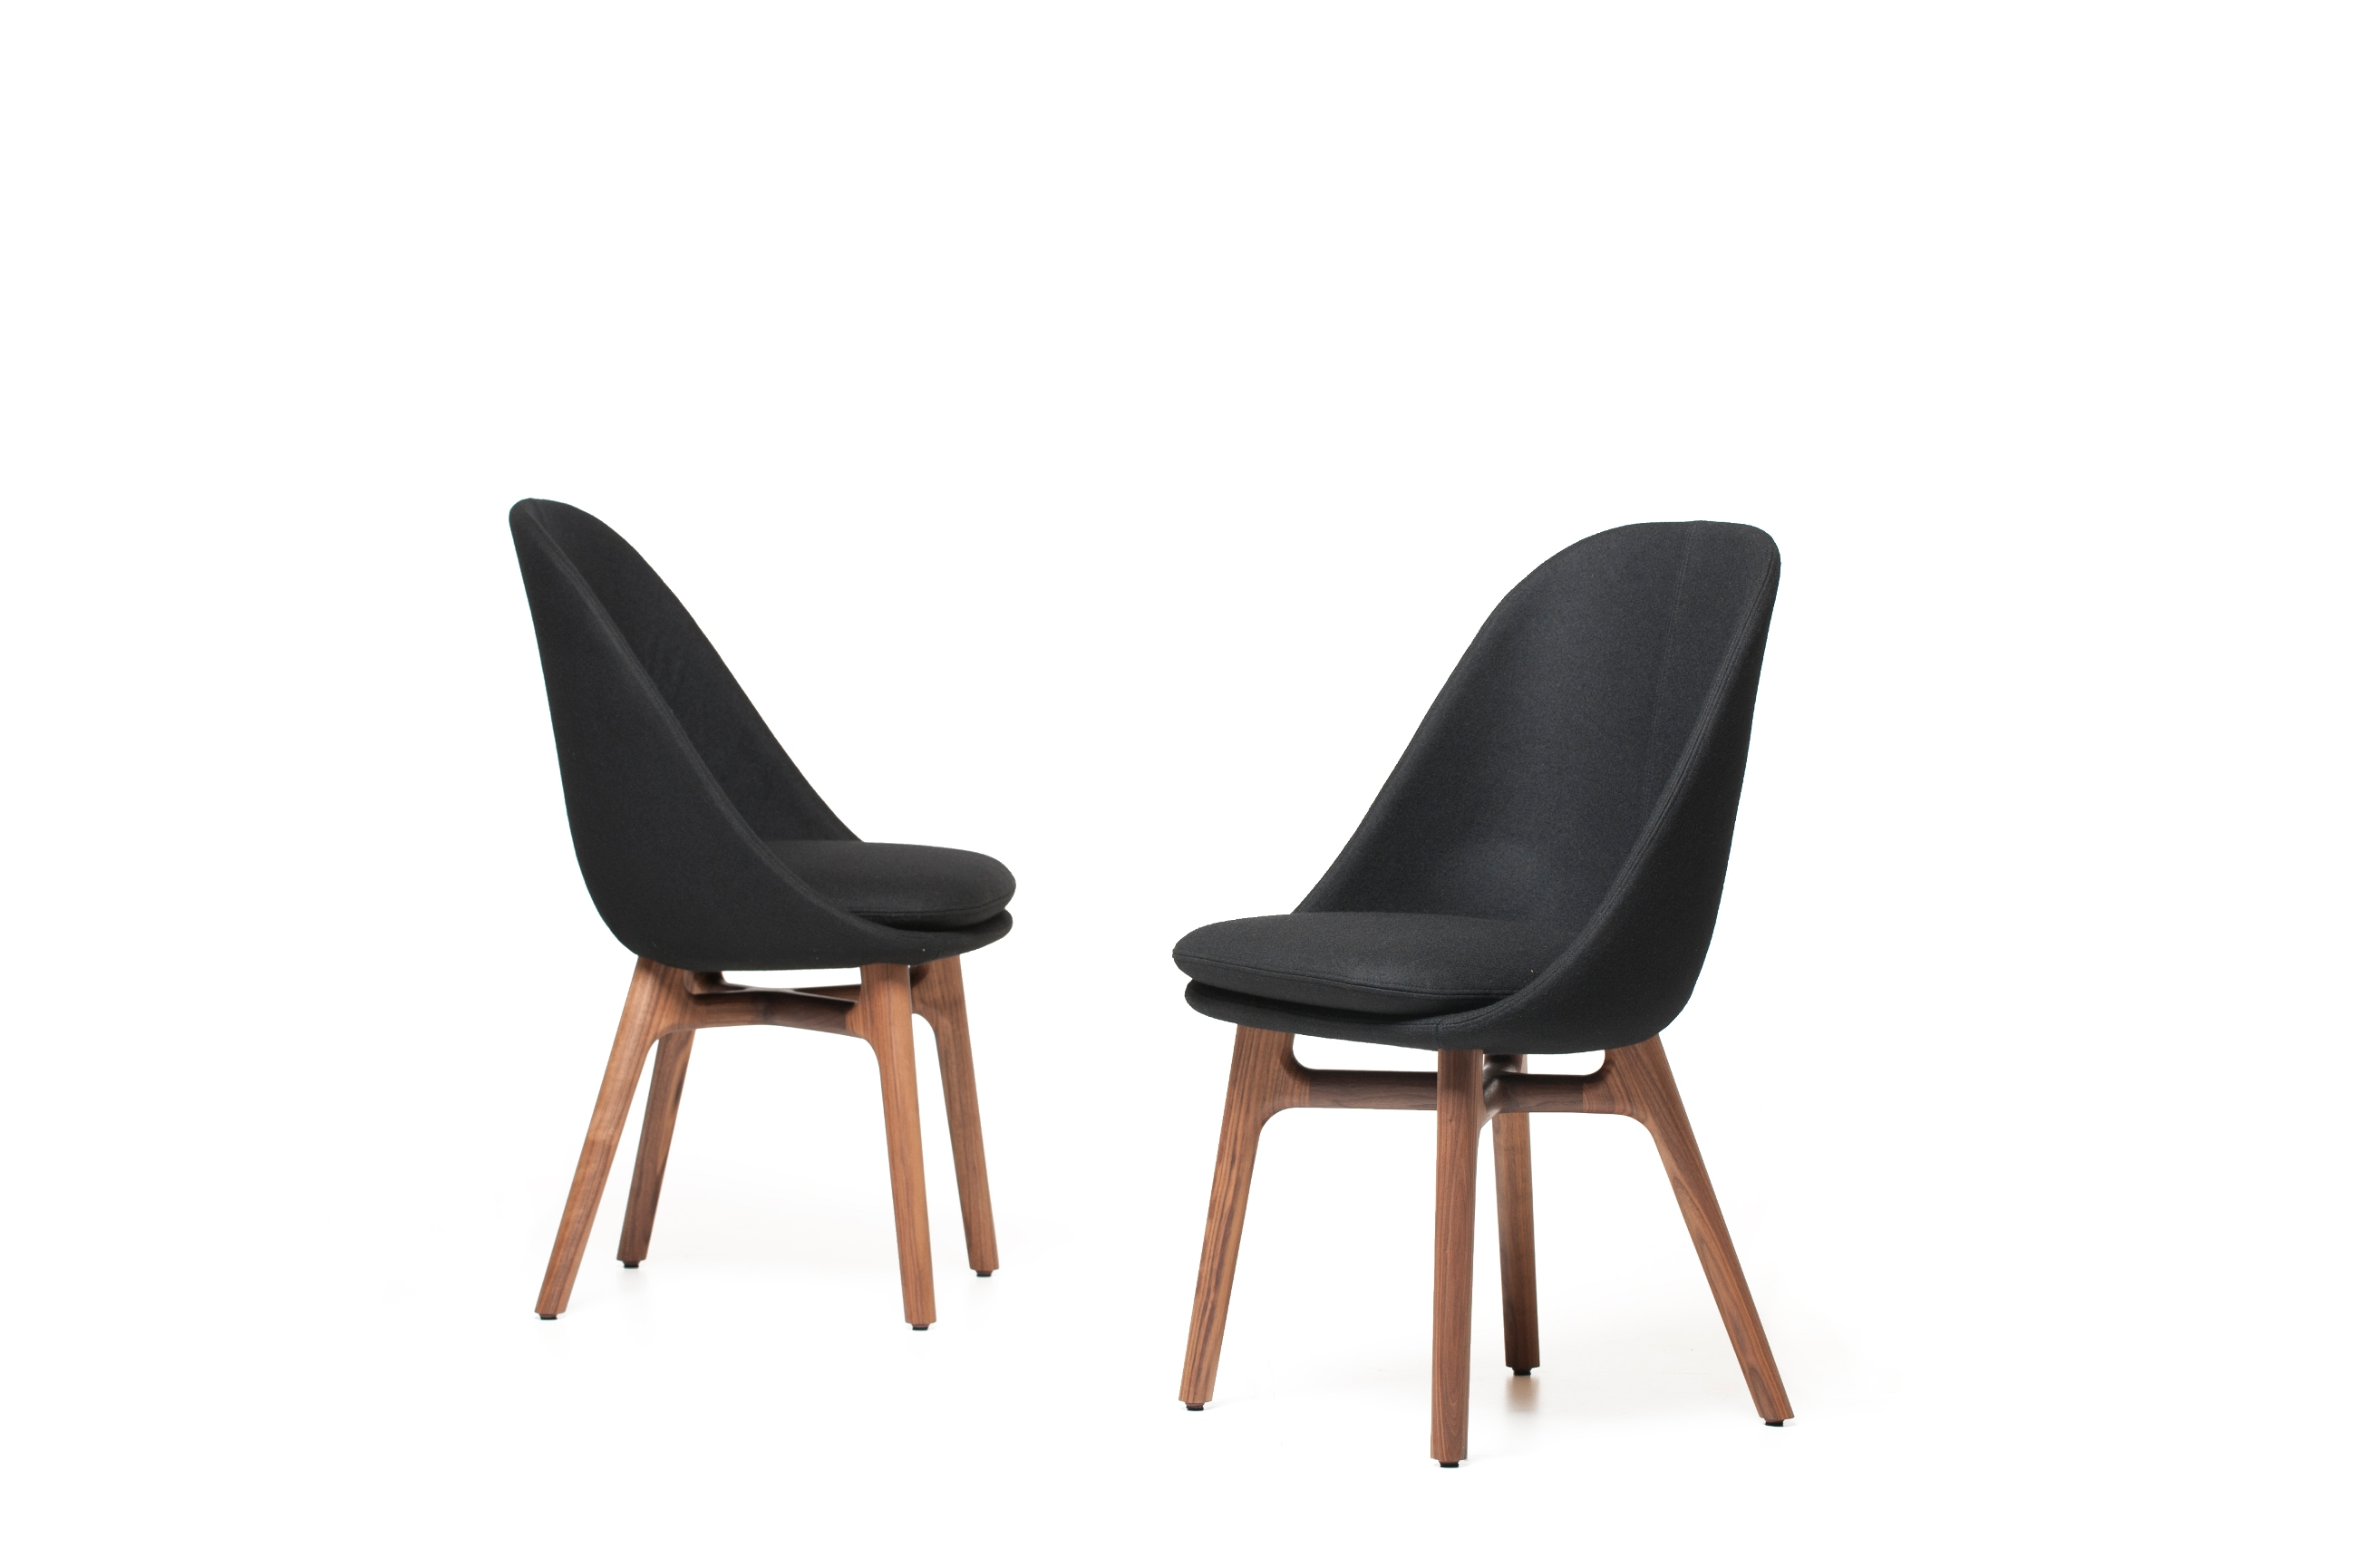 Solo Dining Chair By Neri And Hu Design And Research Office Archello